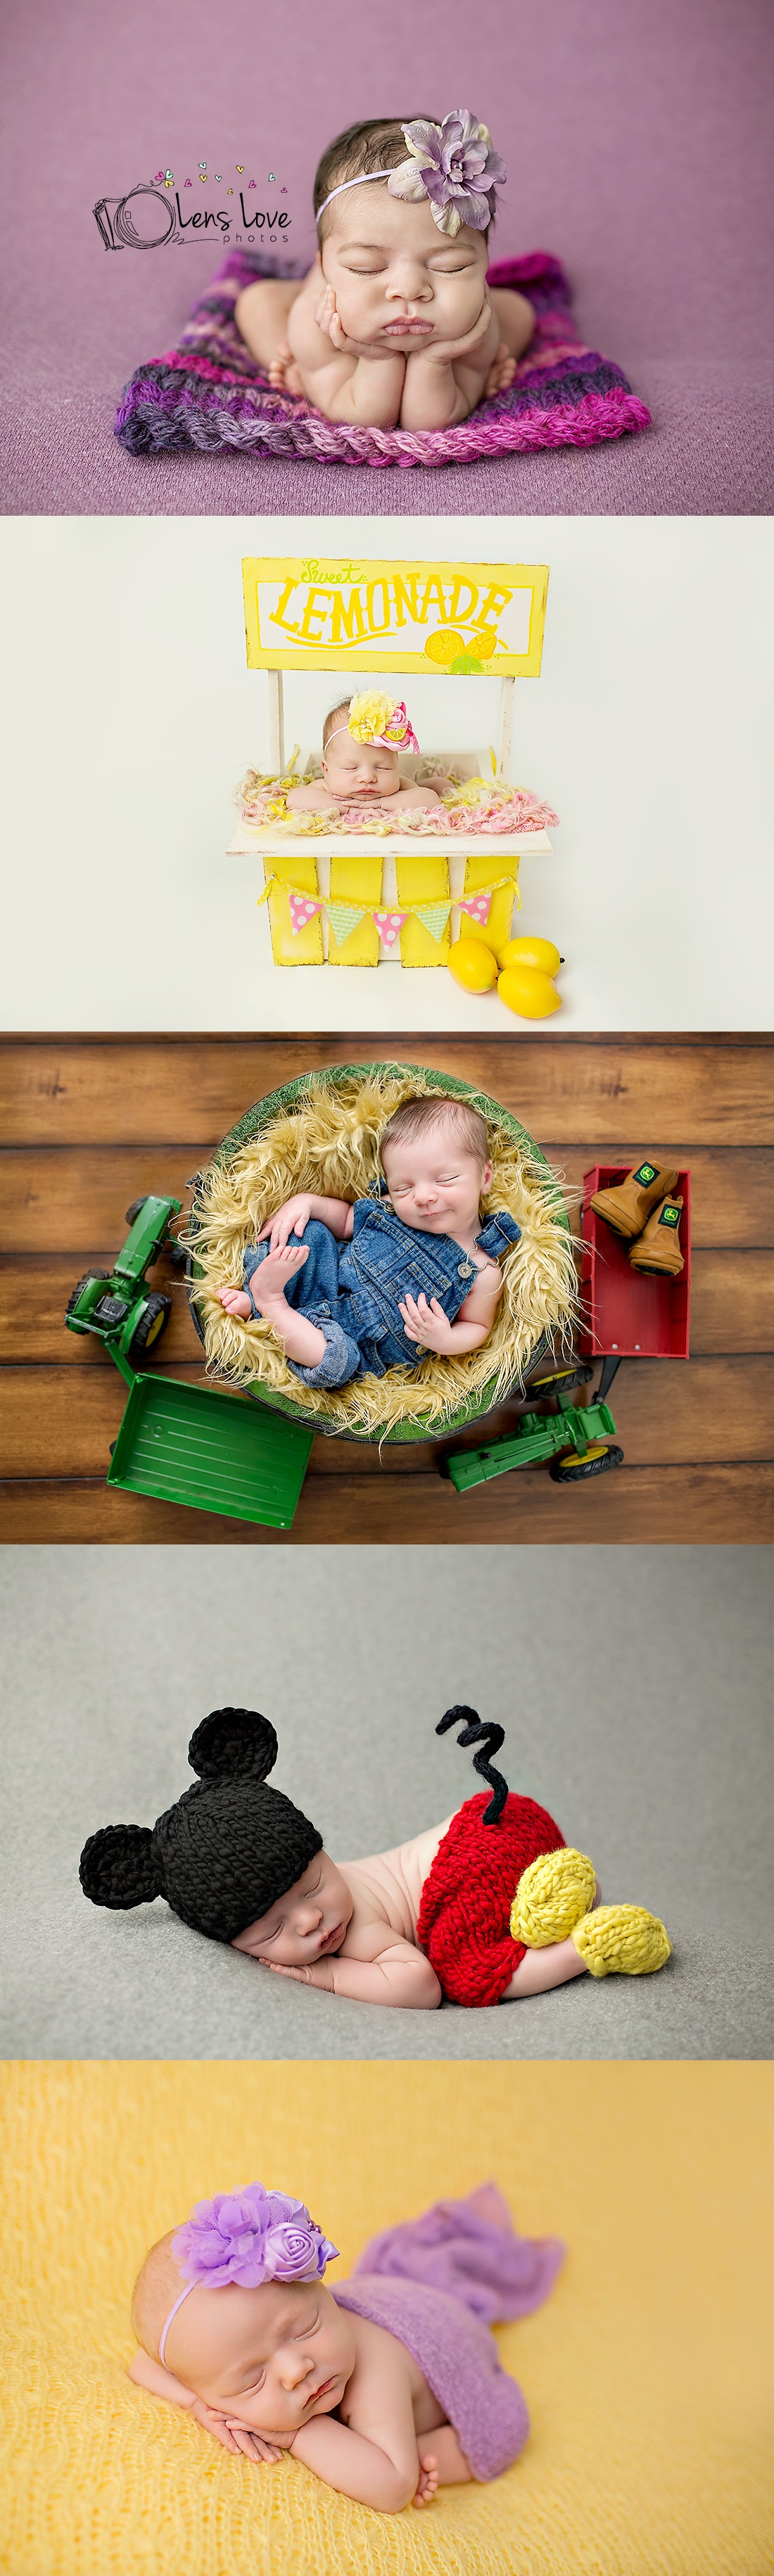 Adorable Baby Props Photography by Lisa Johnson.